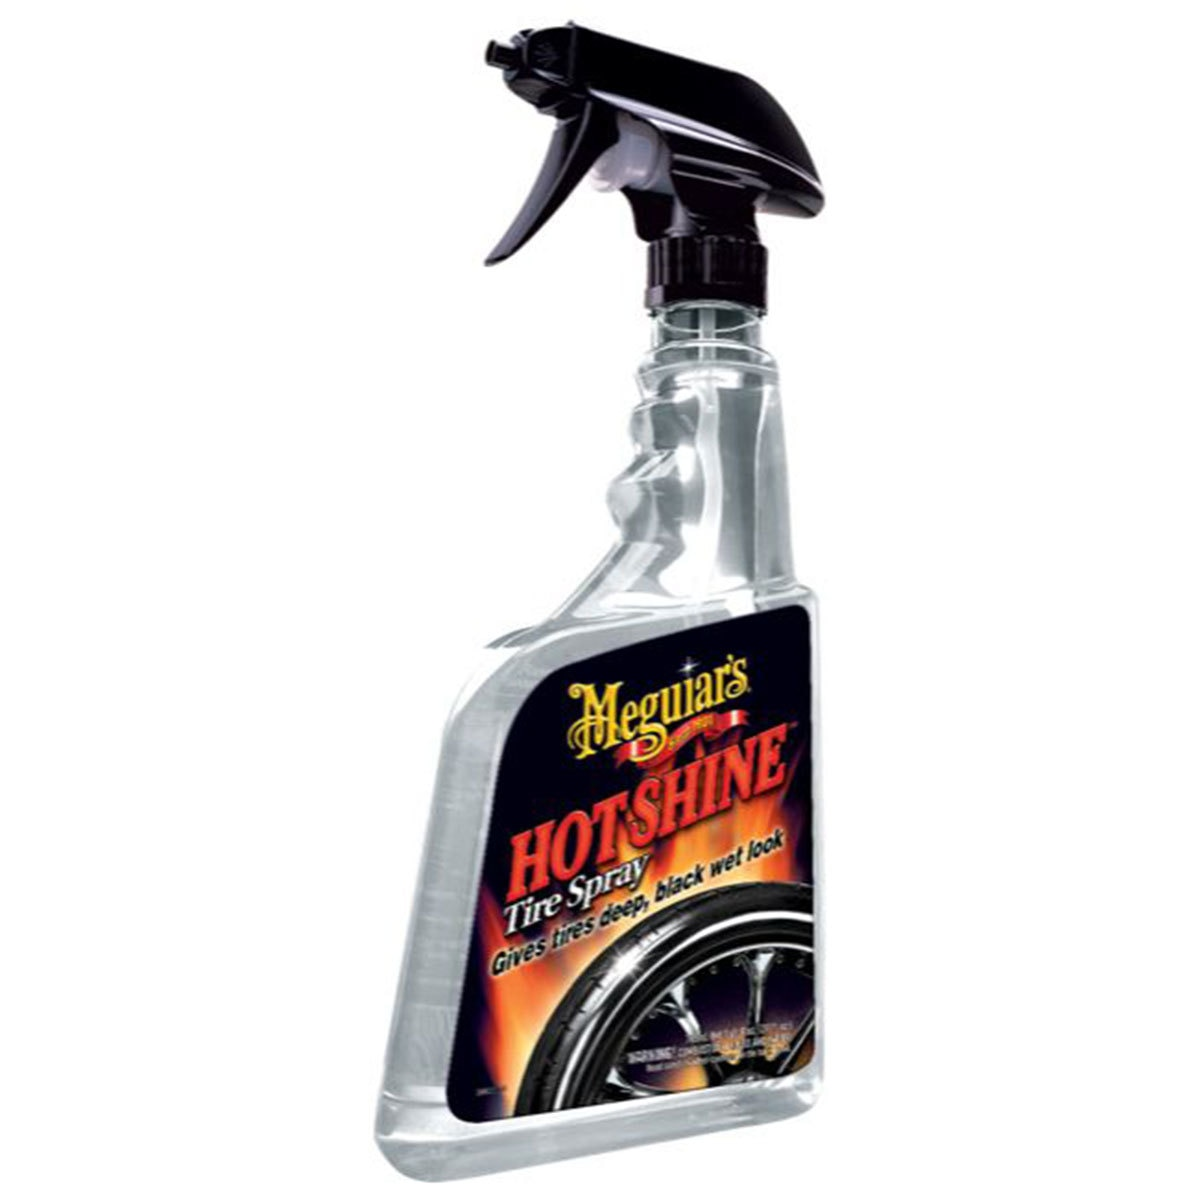 Meguiar's Hot Shine Tire Spray, 24 oz. Spray